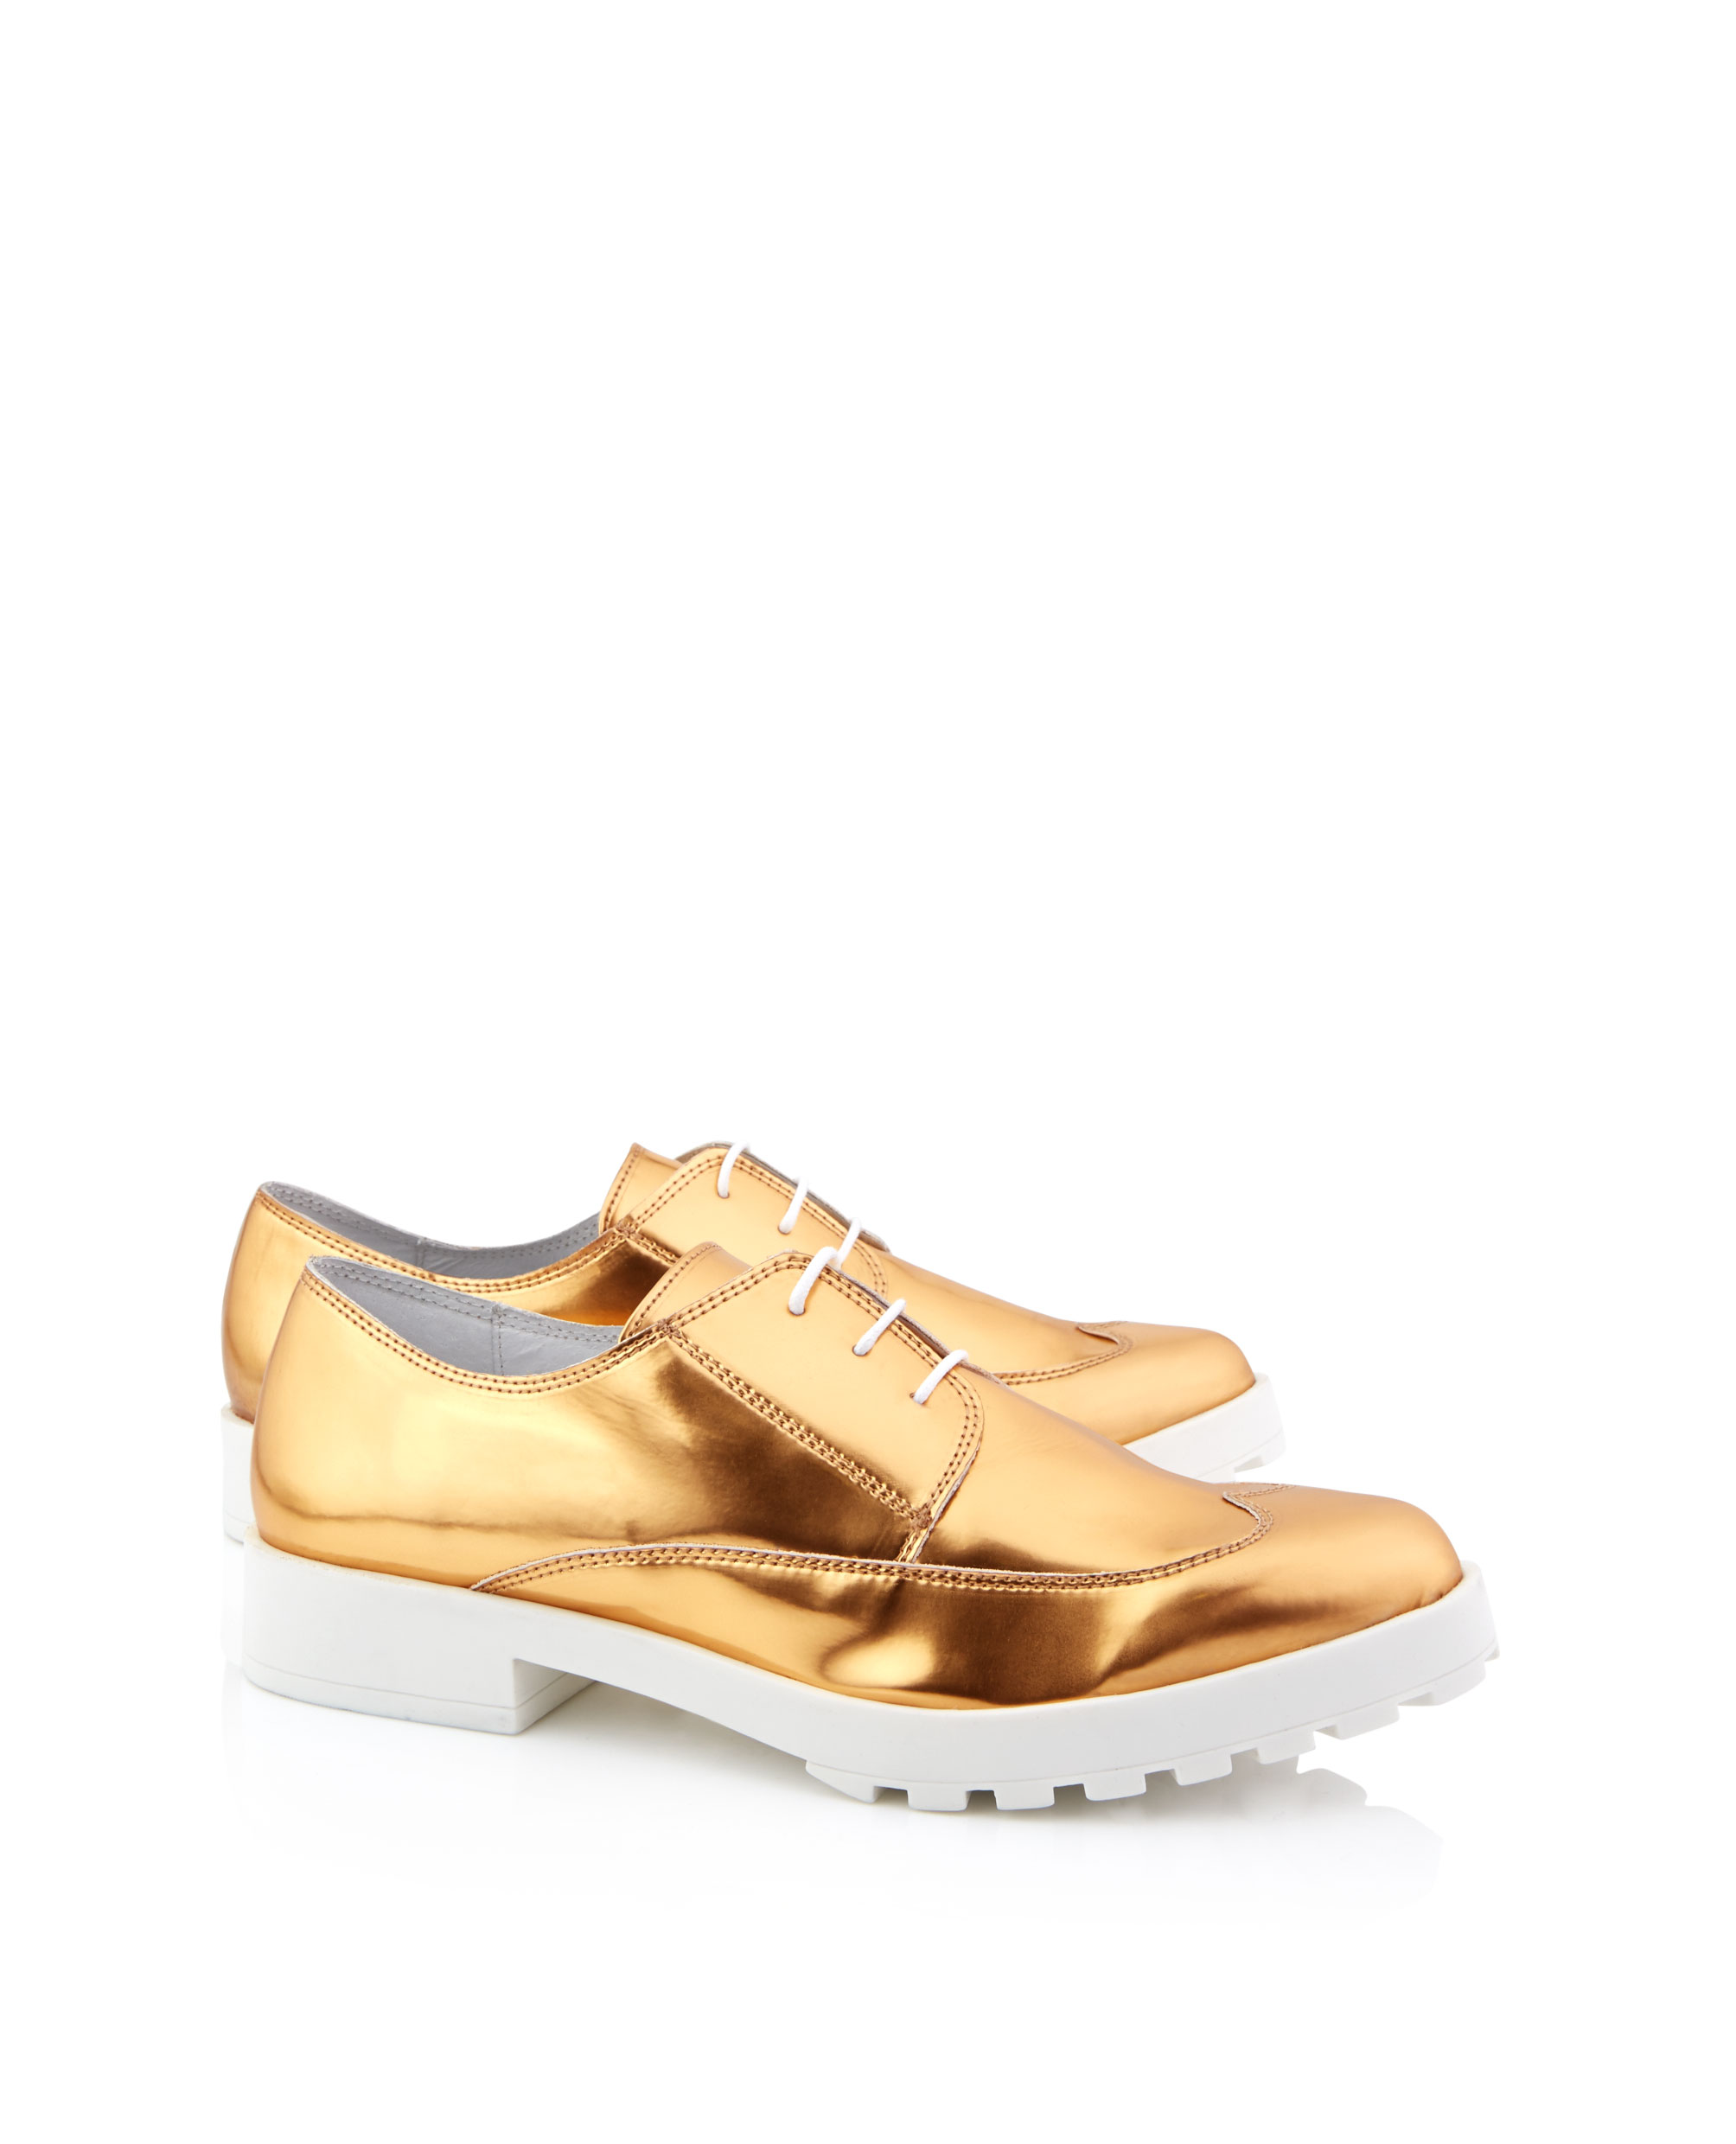 Miista Miley Flat Lace Up Brogues